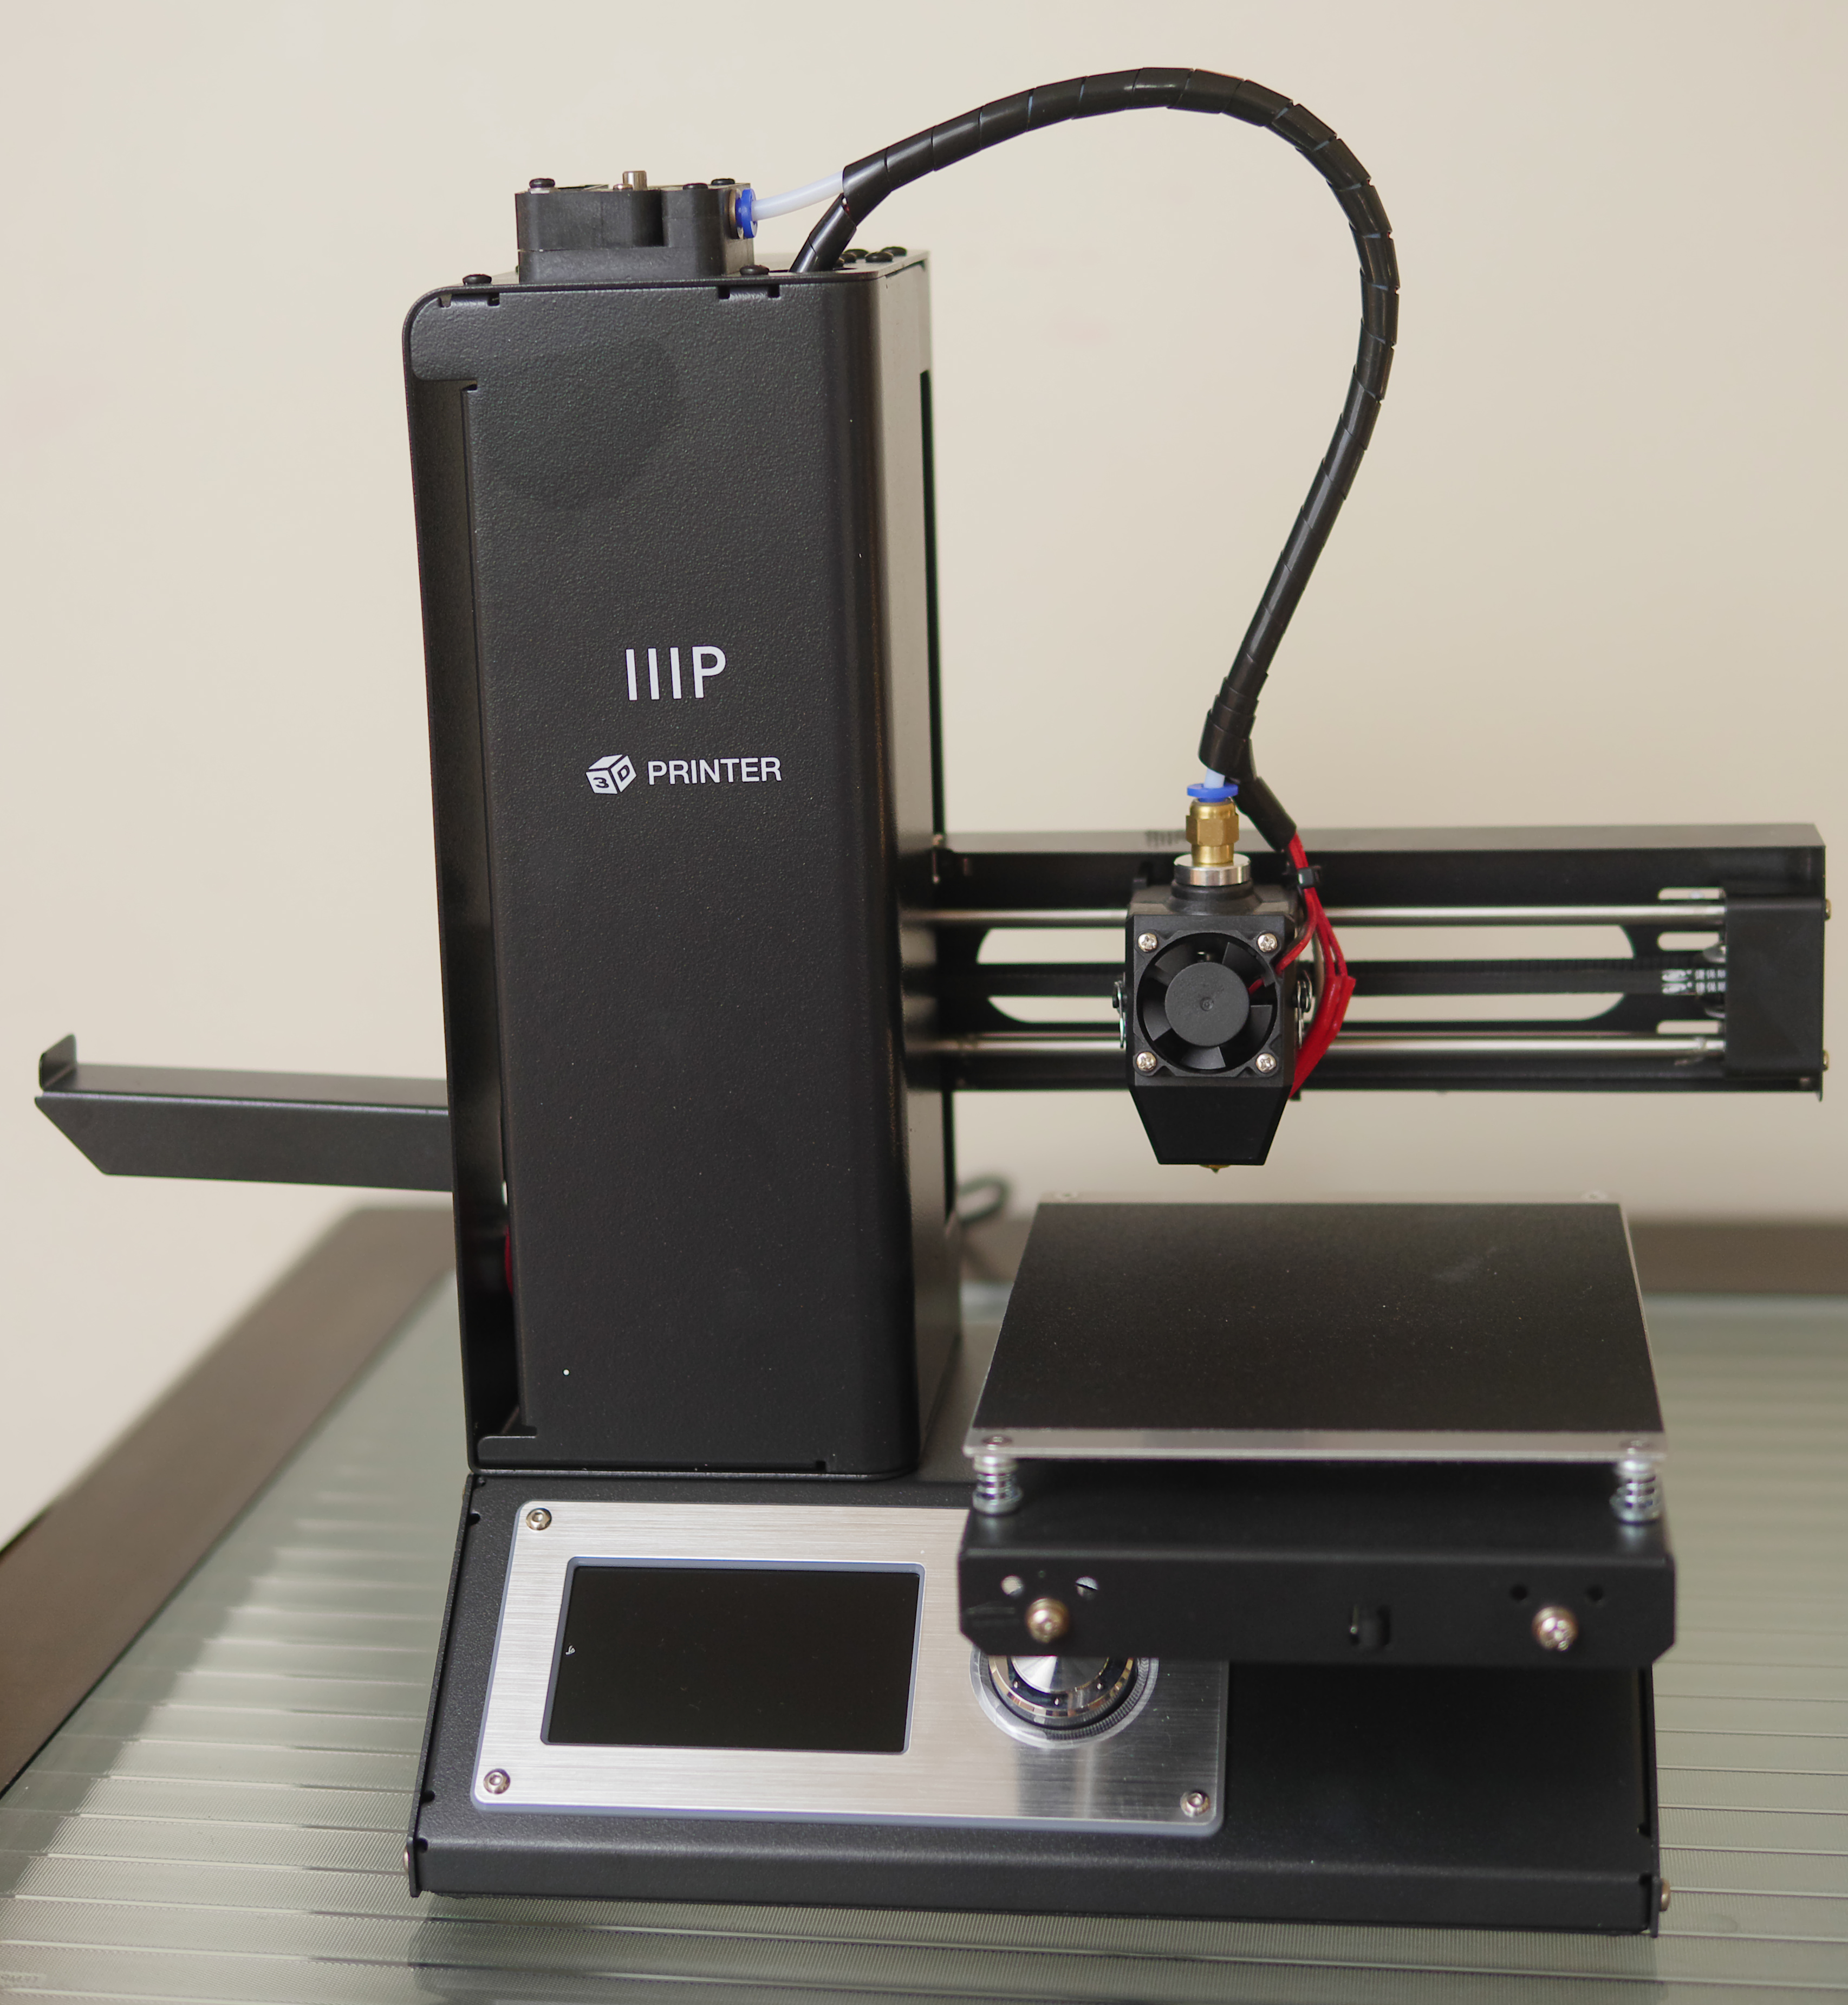 STEM Learning For Kids With The Monoprice Select Mini 3D